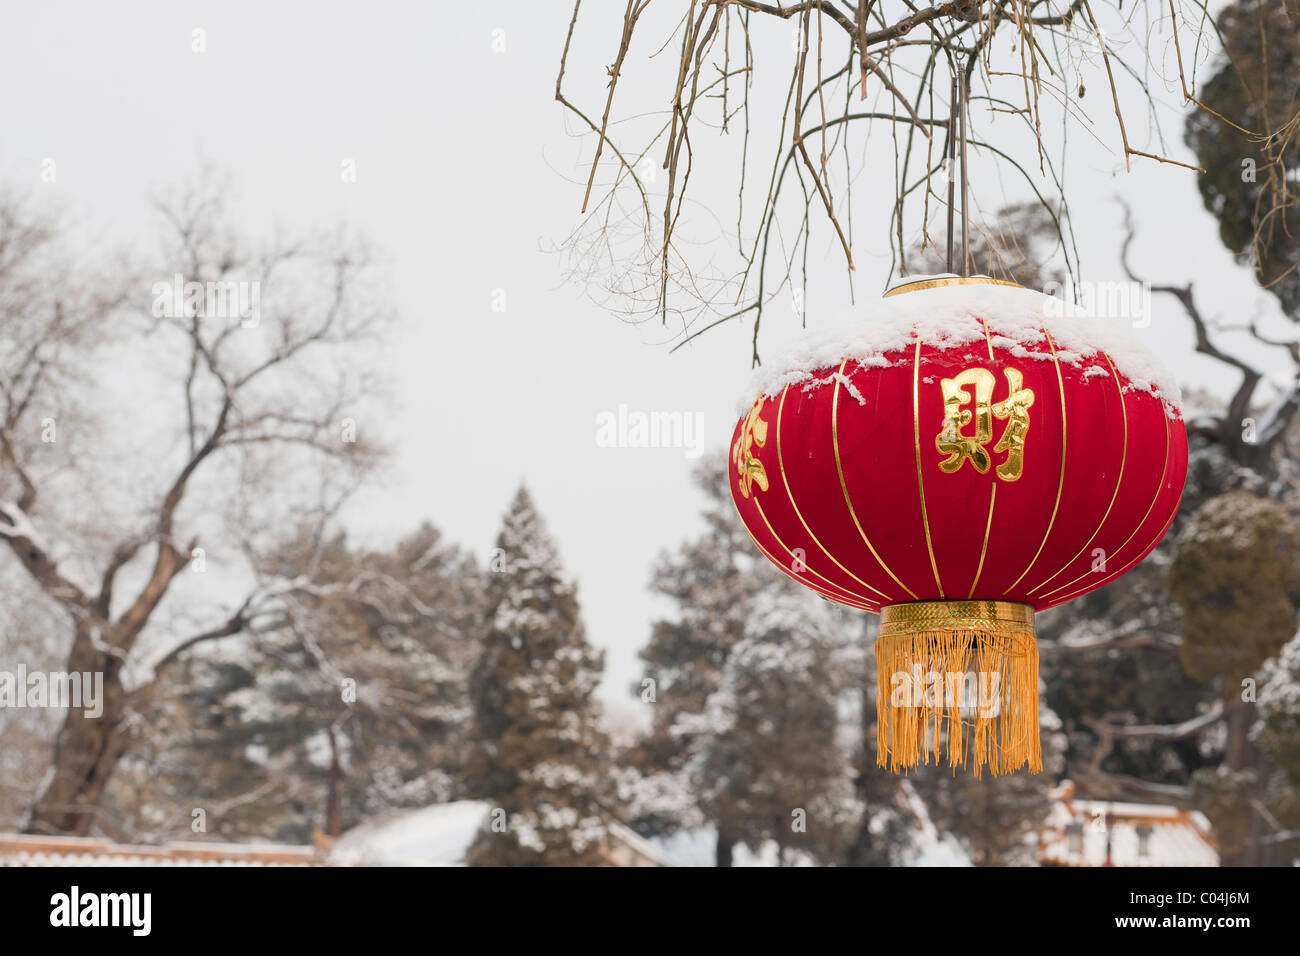 A red lantern with the character 'fu', happiness, for the Chinese New Year (rabbit) 2011 after snowfall - Stock Image